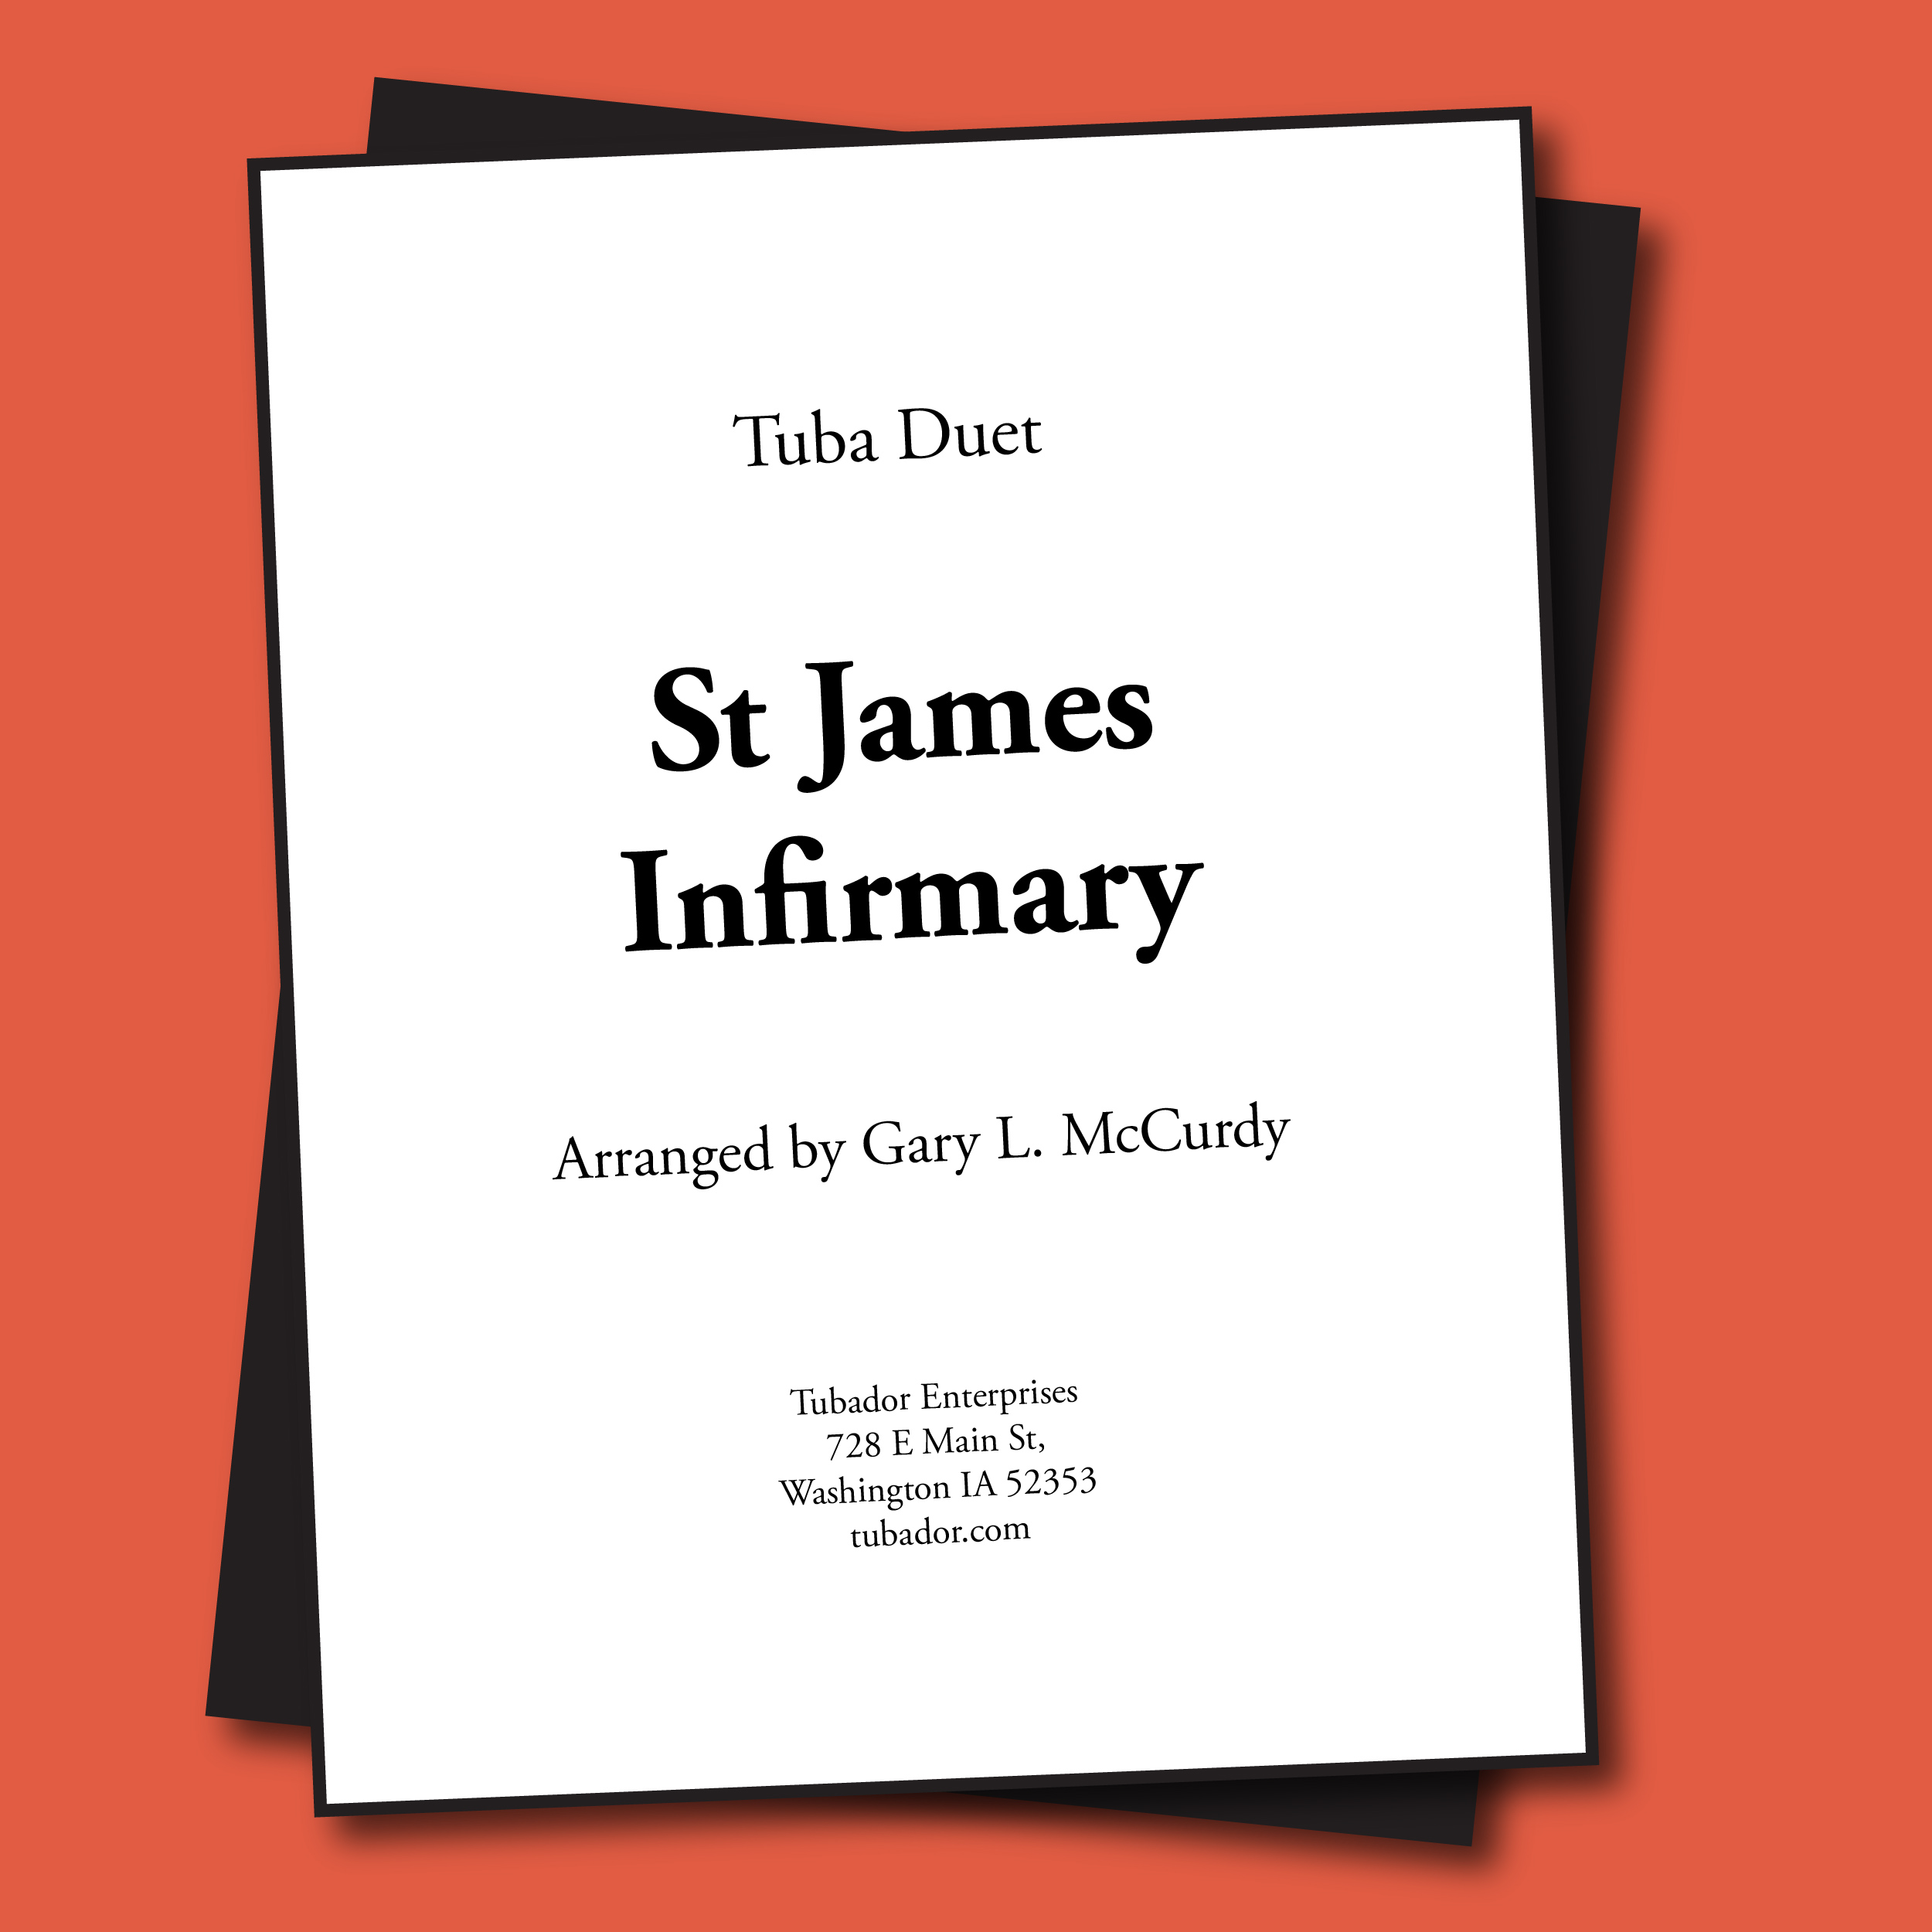 Saint James Infirmary Sheet Music - Duet